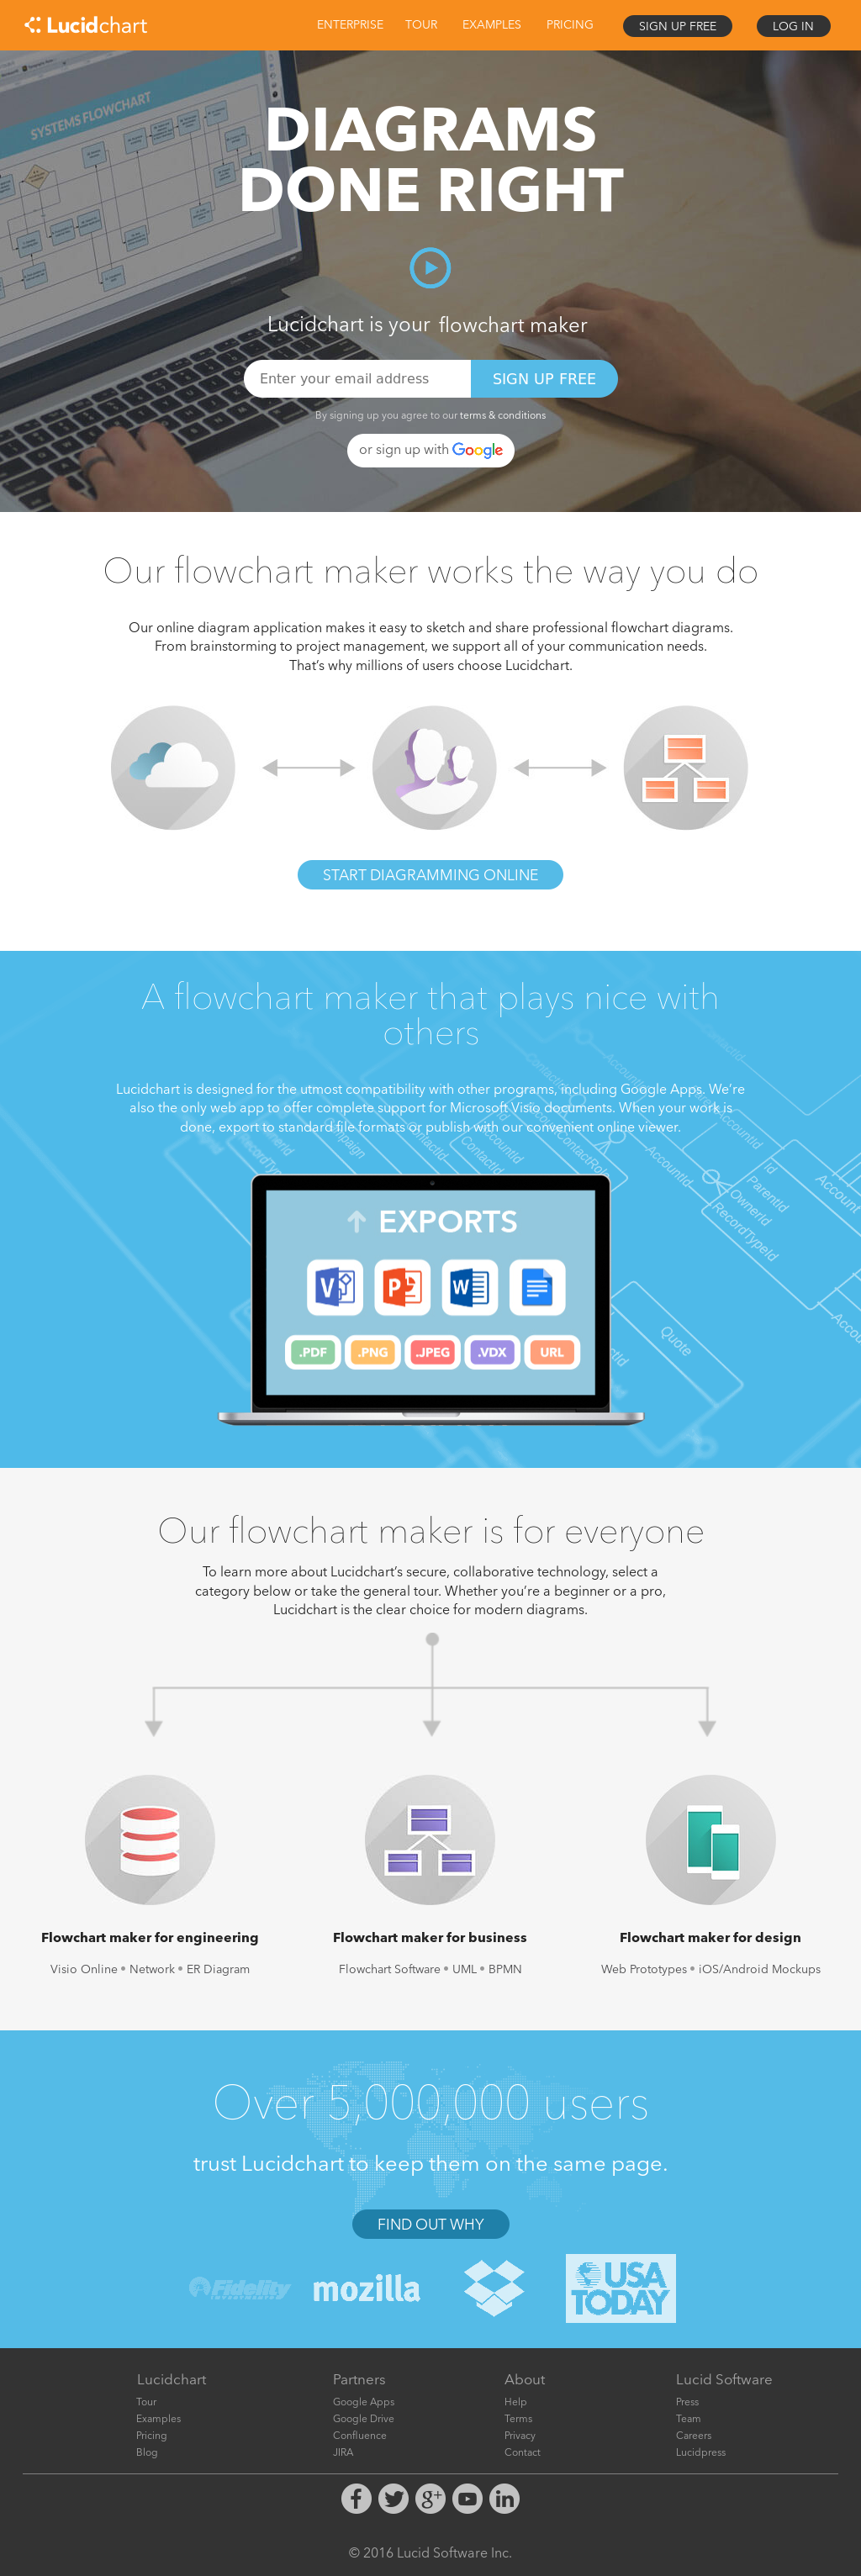 Lucidchart Competitors, Revenue and Employees - Owler Company Profile